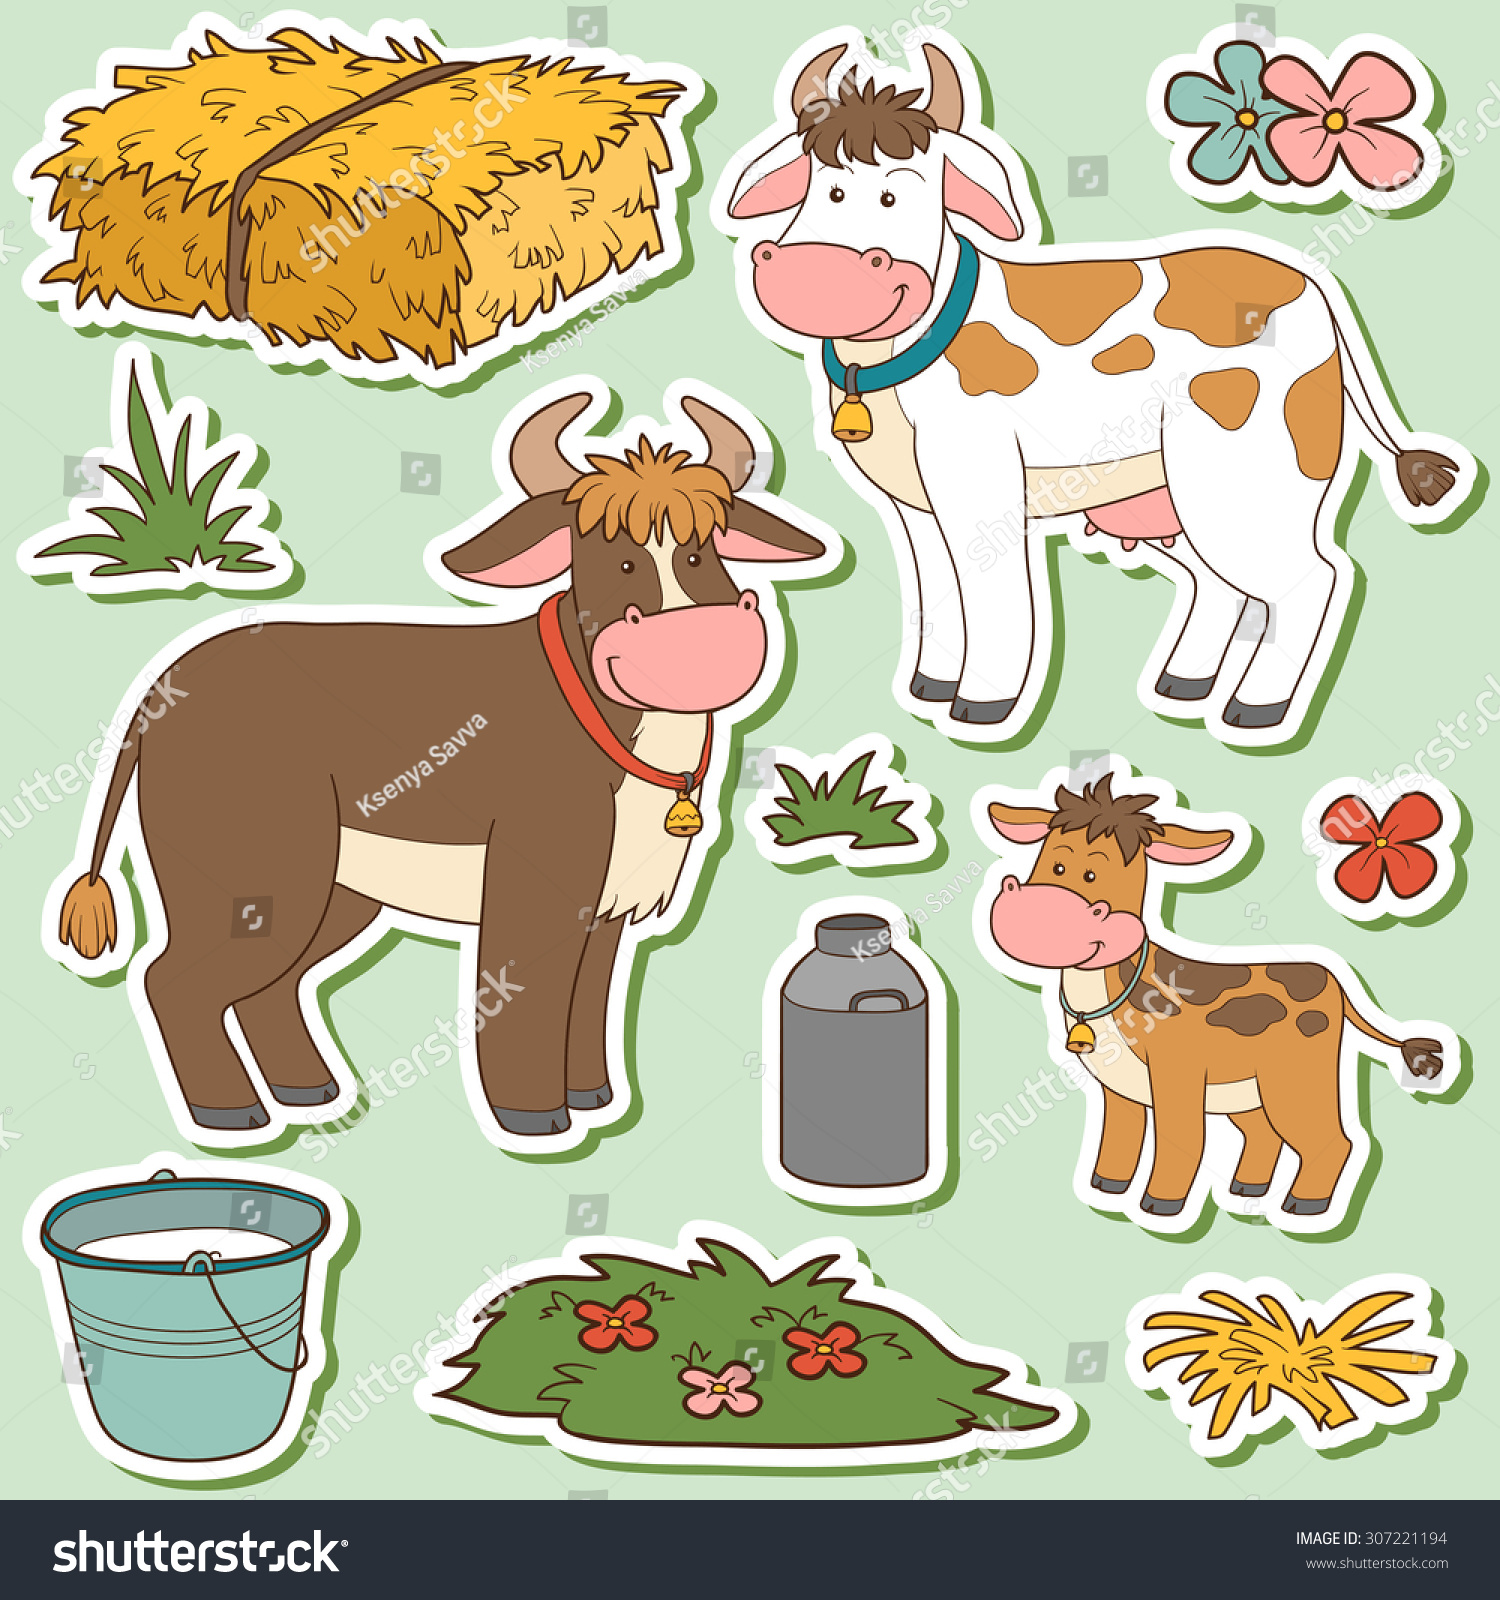 Farm animals set vector stickers with cow family and farm items